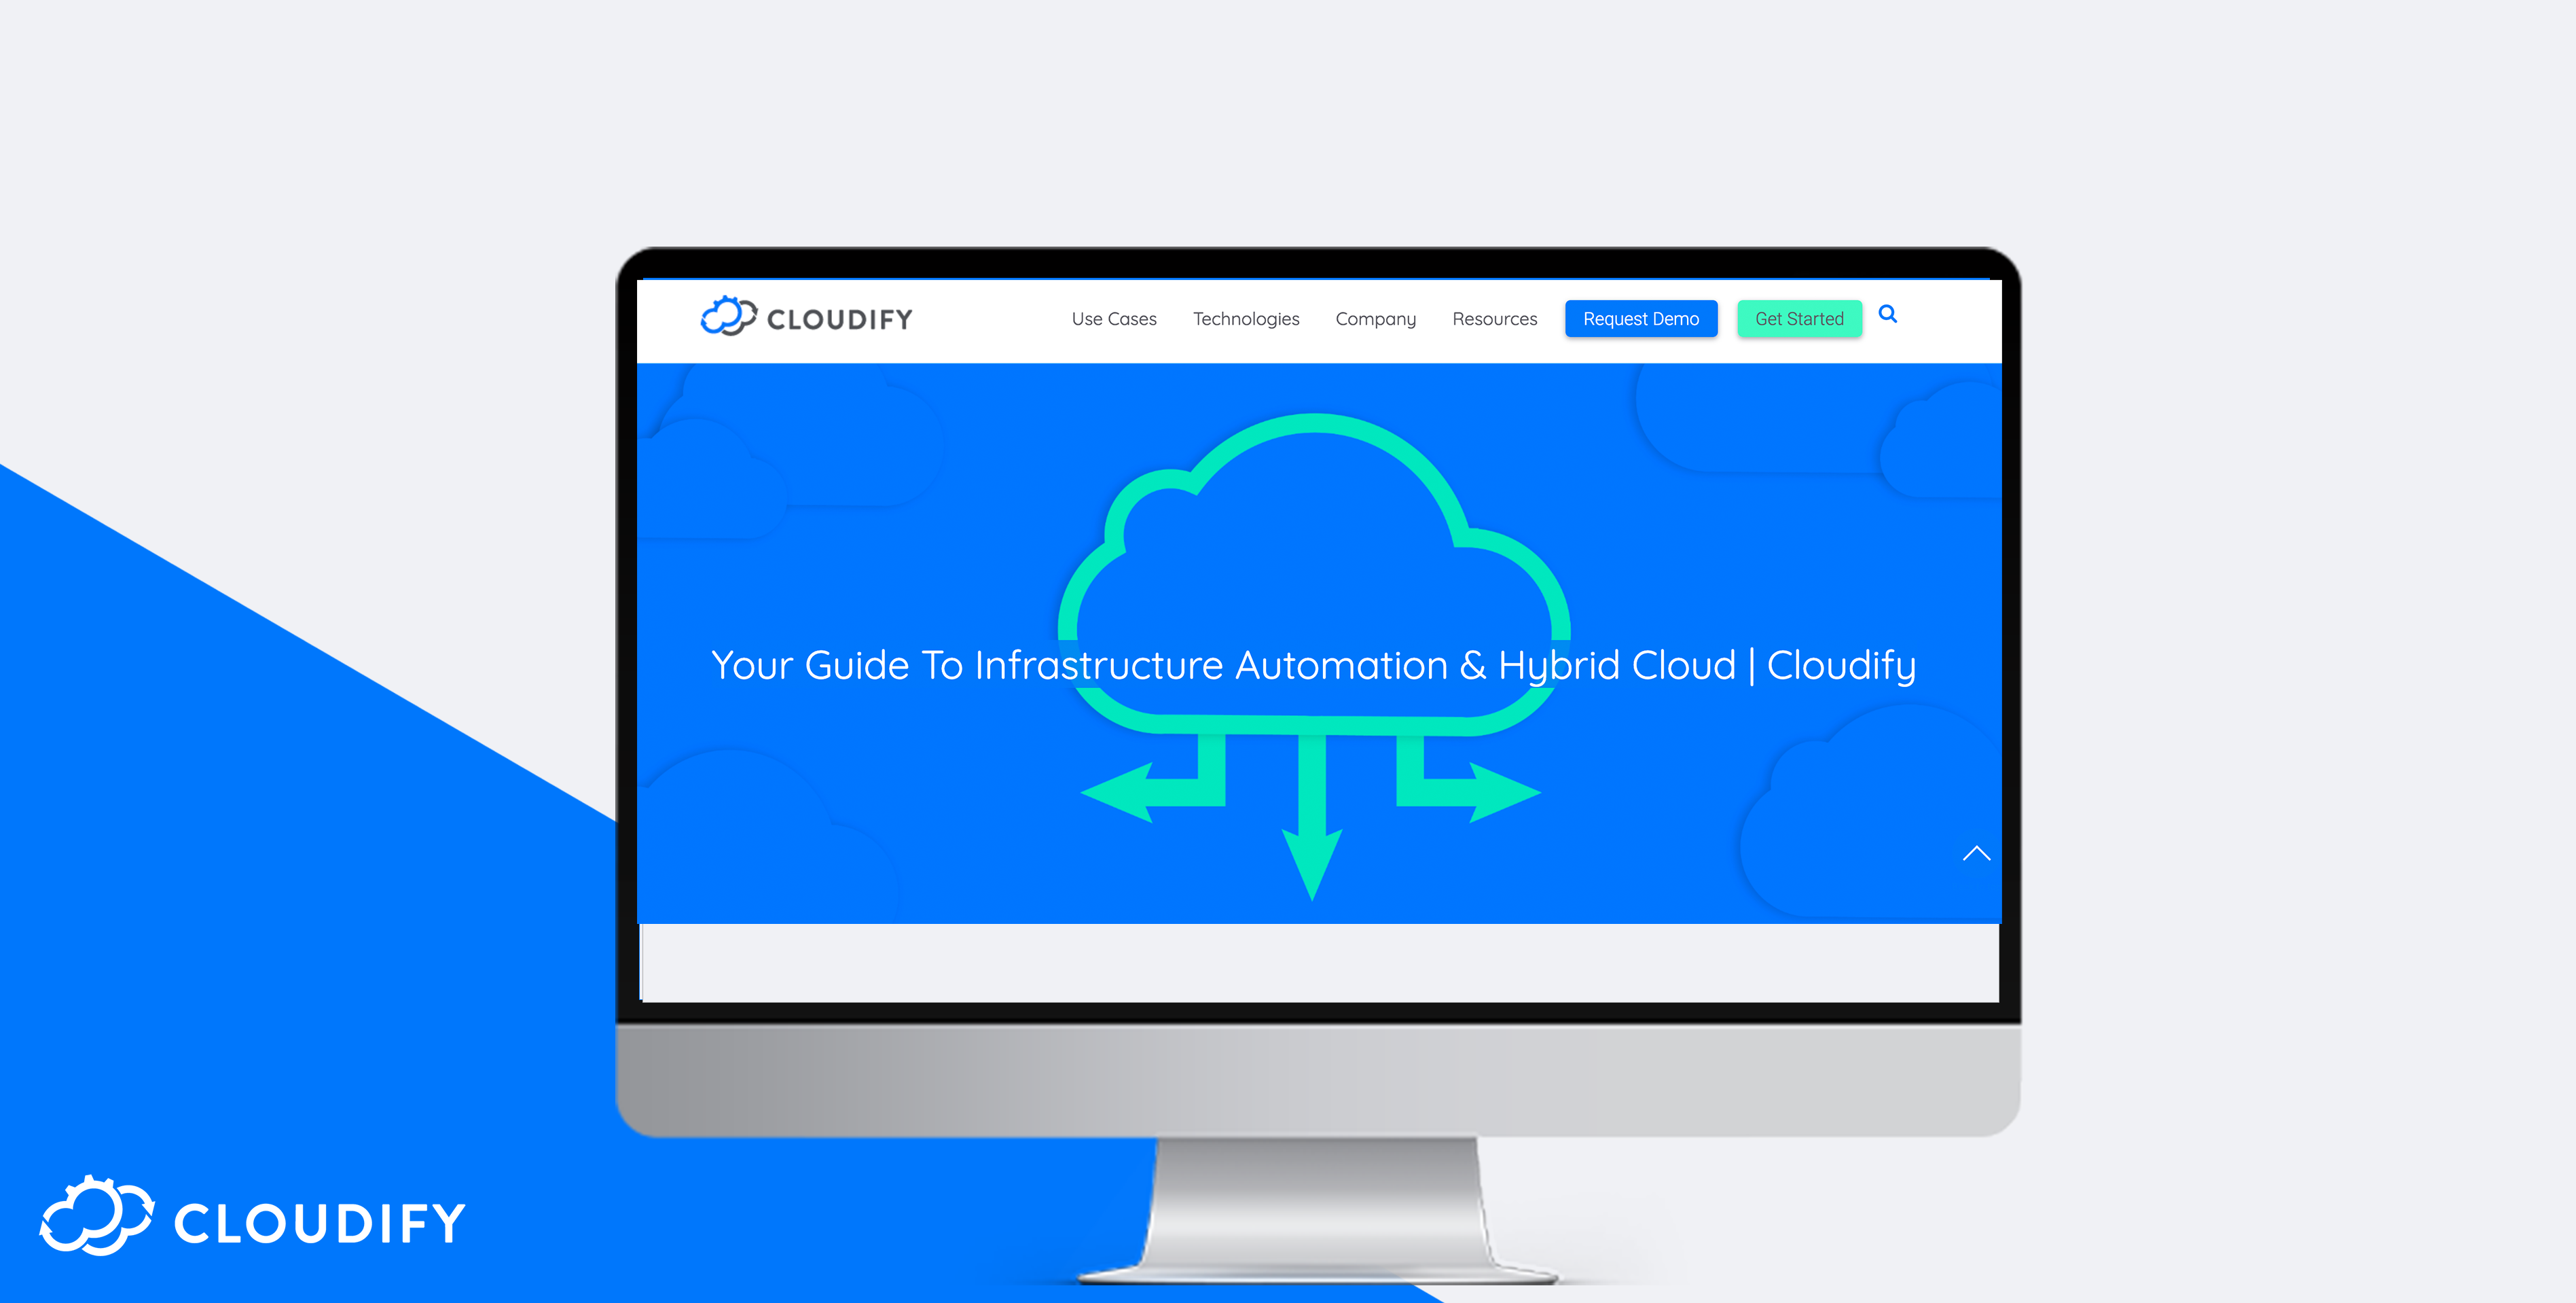 how much do you know about Hybrid Cloud? How does it really related to infrastructure automation? What even IS infrastructure automation? Well question no more! Head to our brand new guide page to learn everything you need to know about Hybrid Cloud: